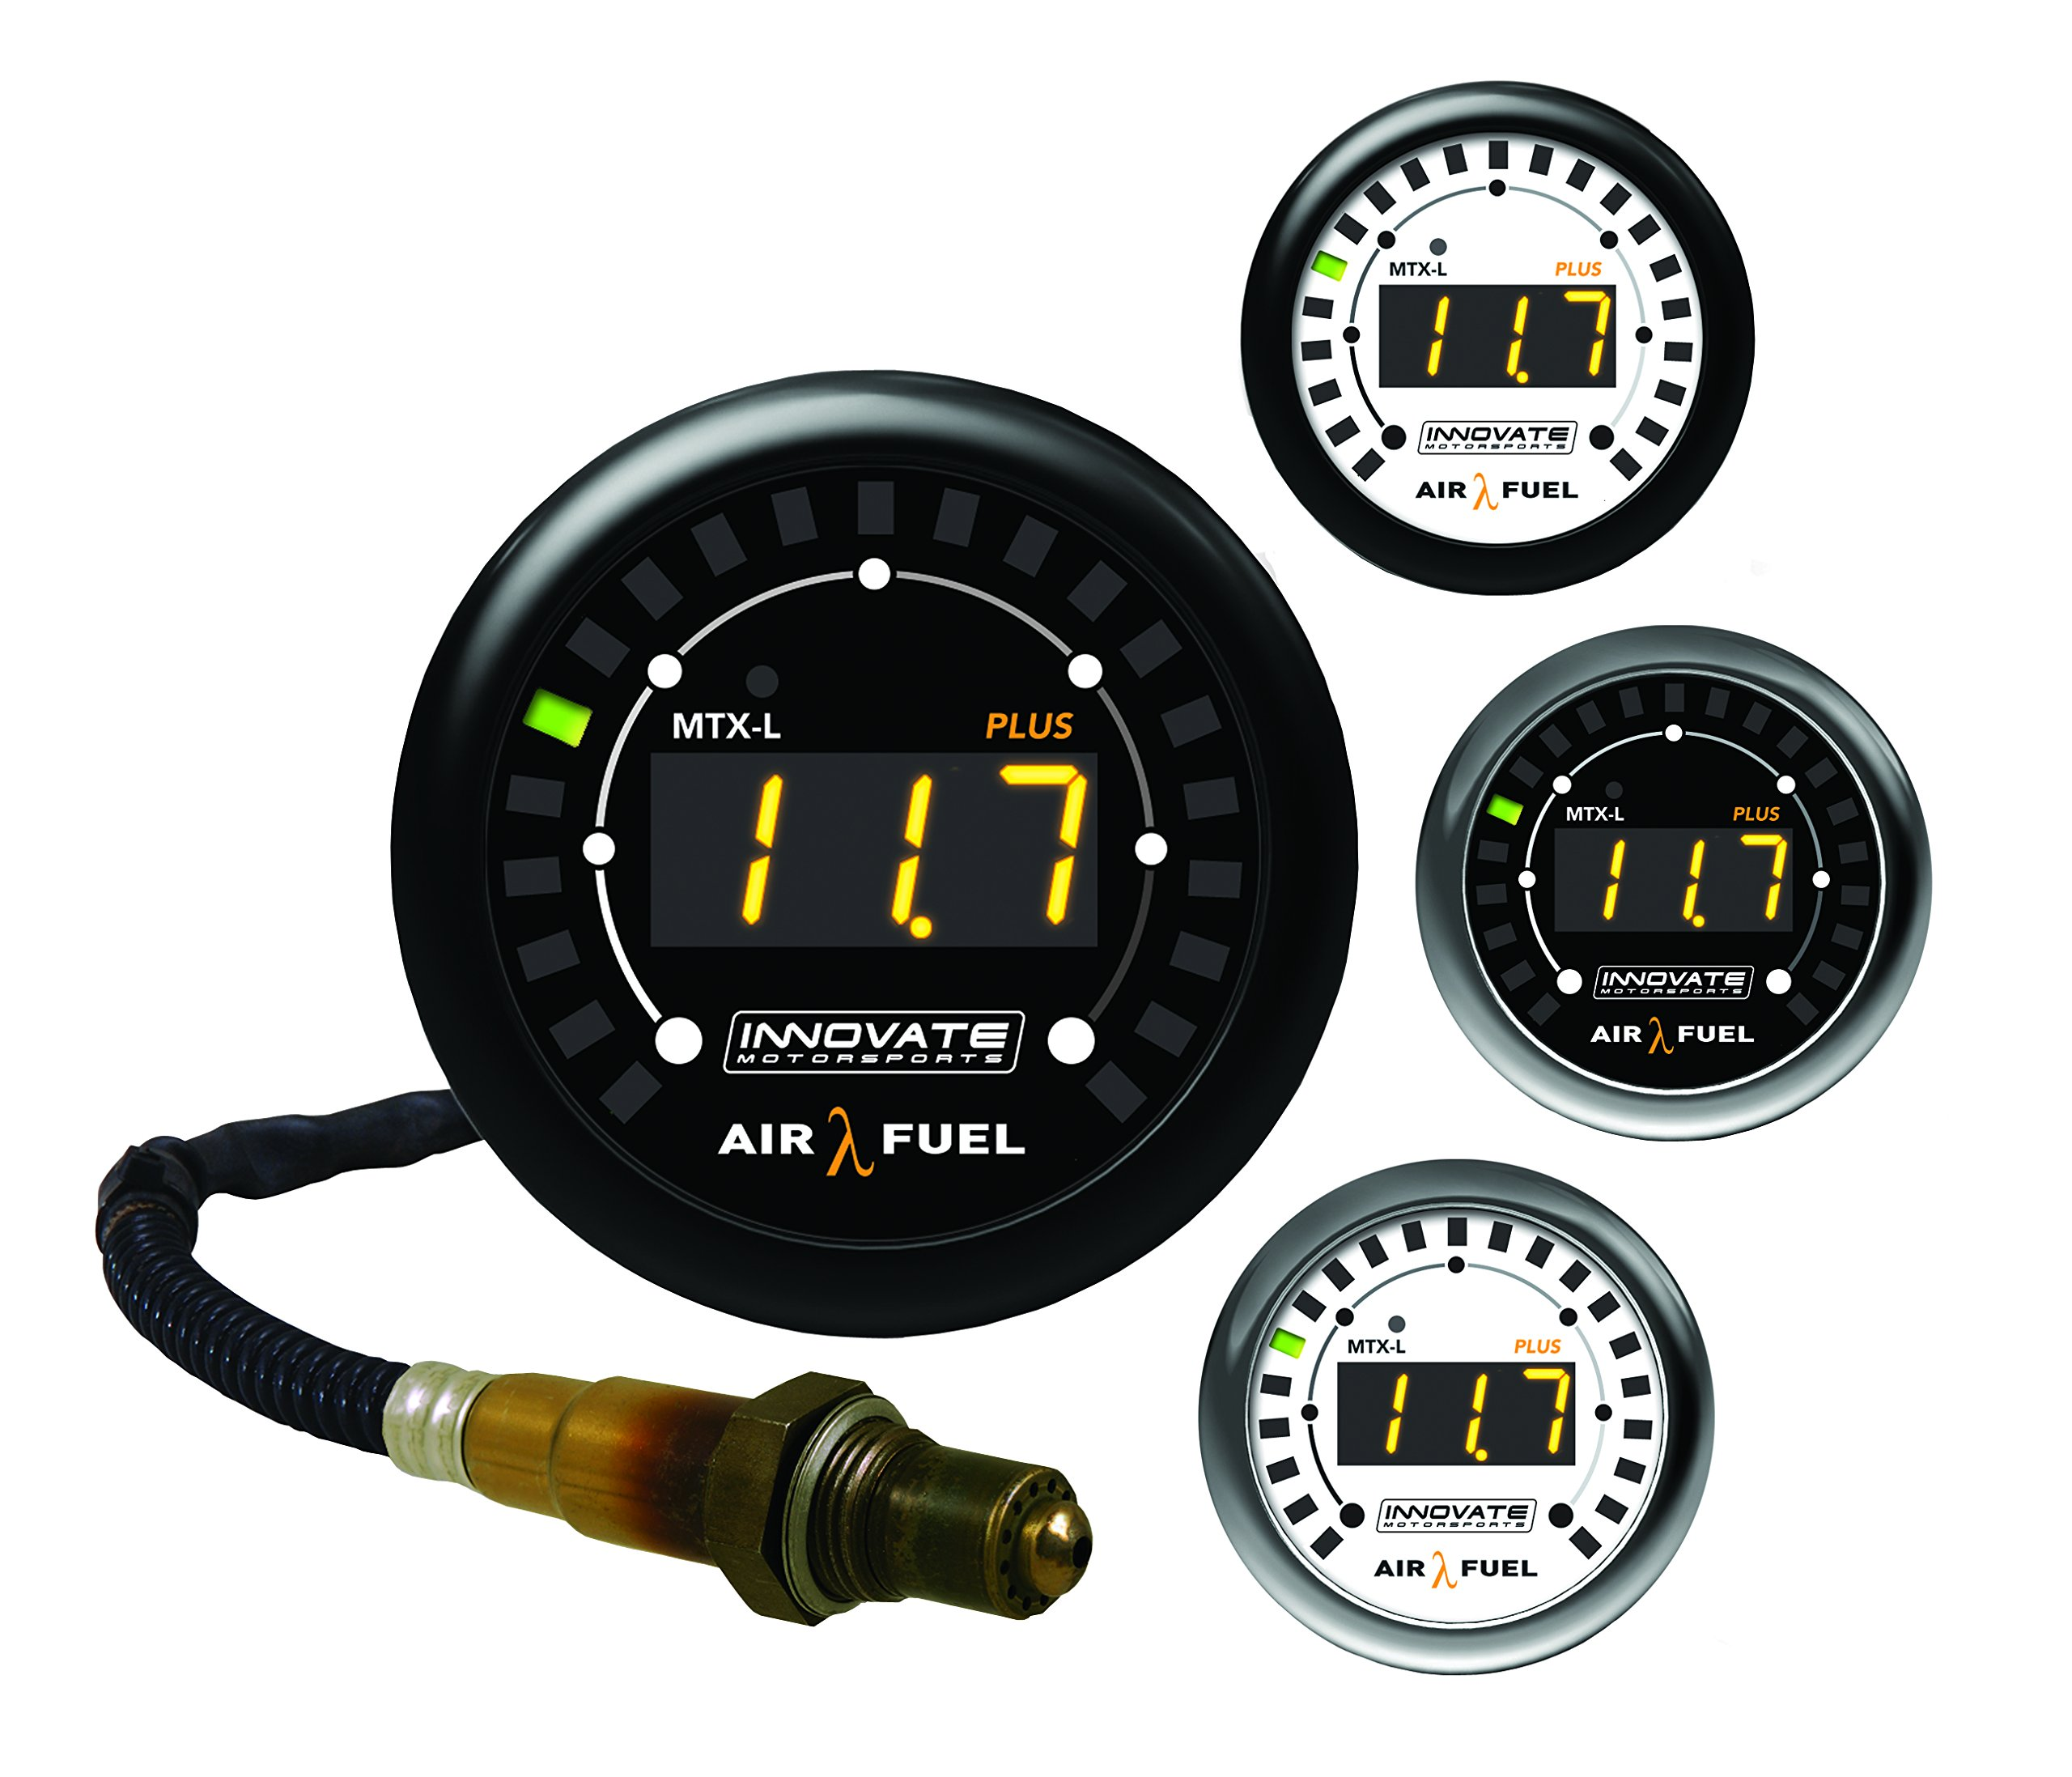 Innovate Motorsports 3924 MTX-L Plus Wideband Gauge